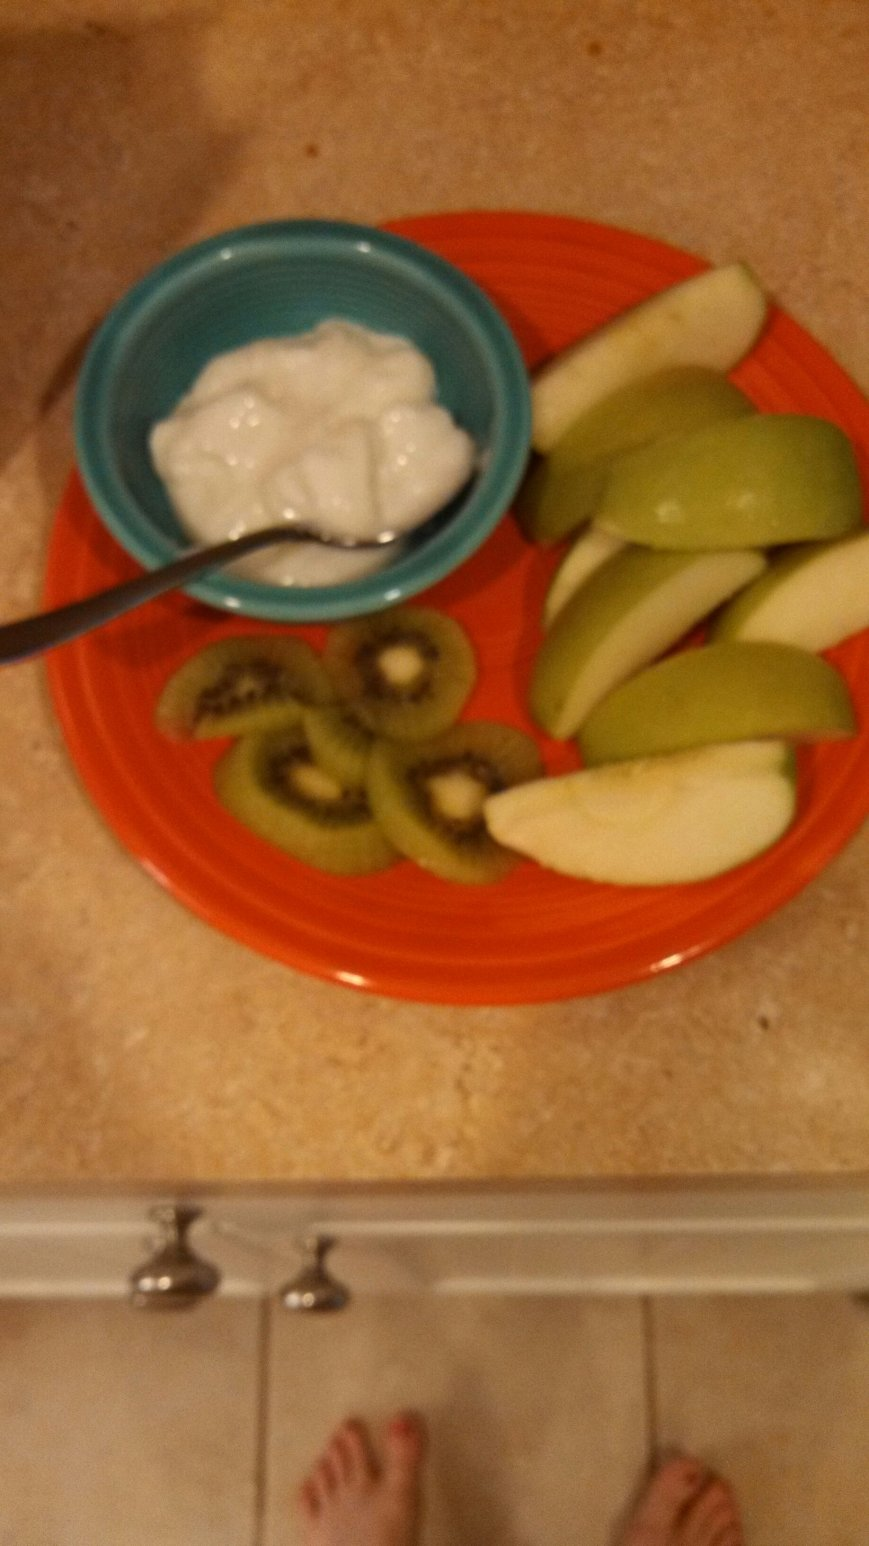 A sliced apple, plain yogurt, and a sliced kiwi.